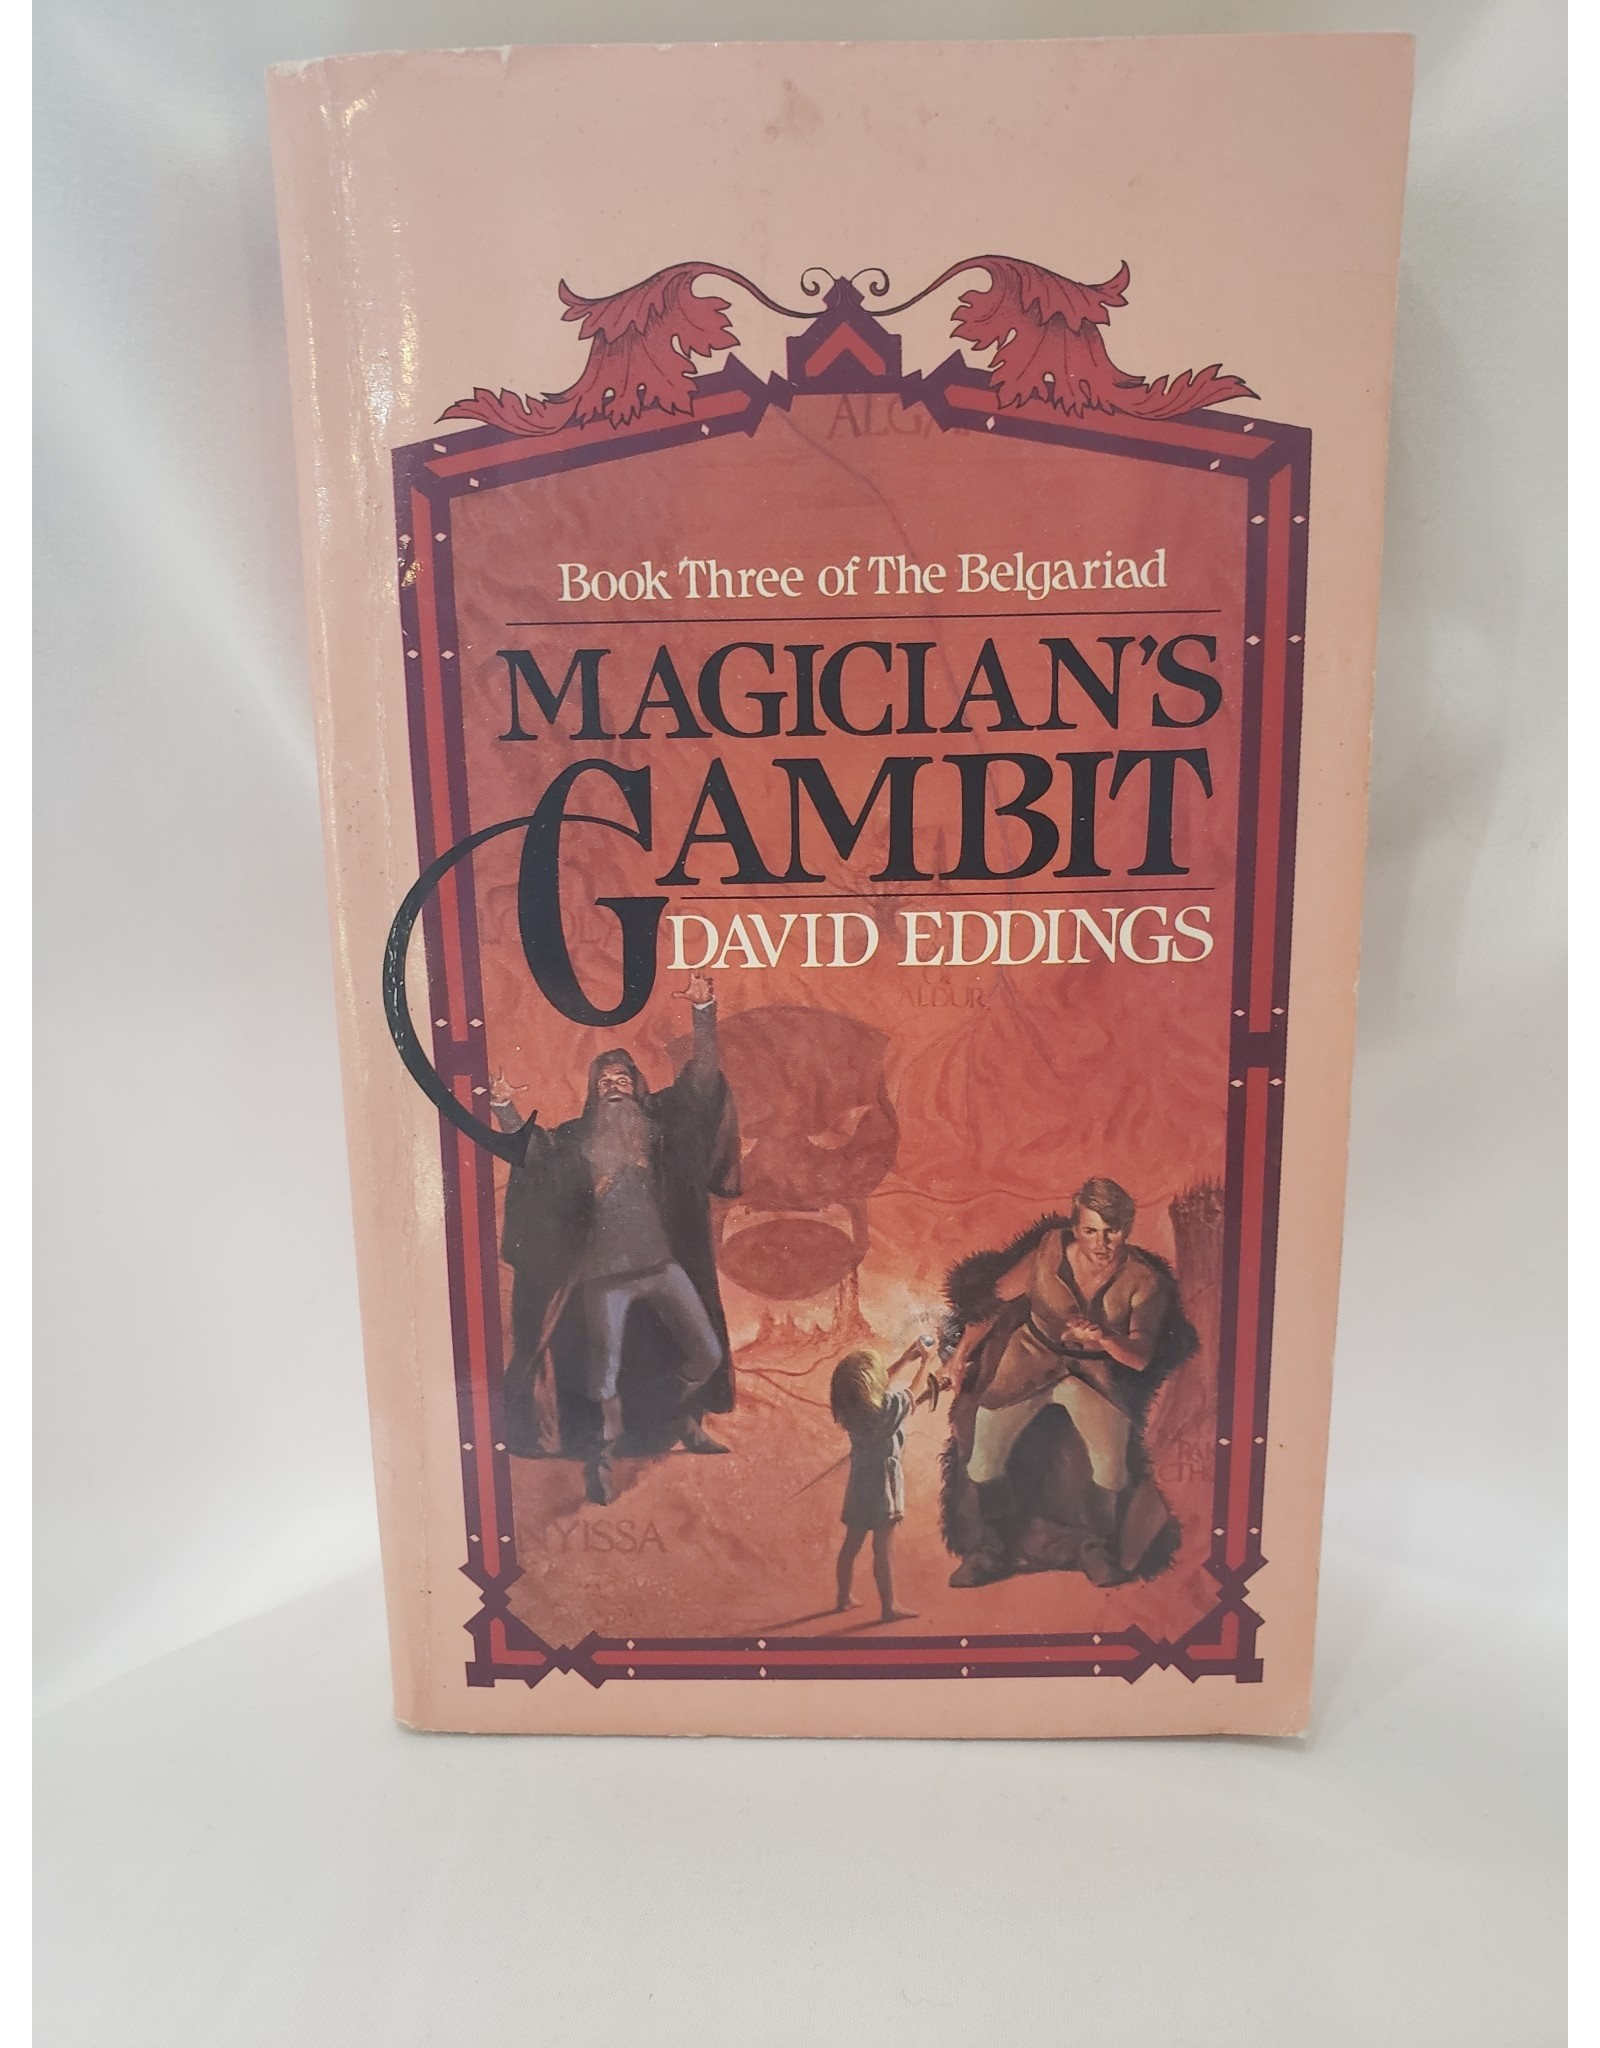 Magician's Gambit - Used